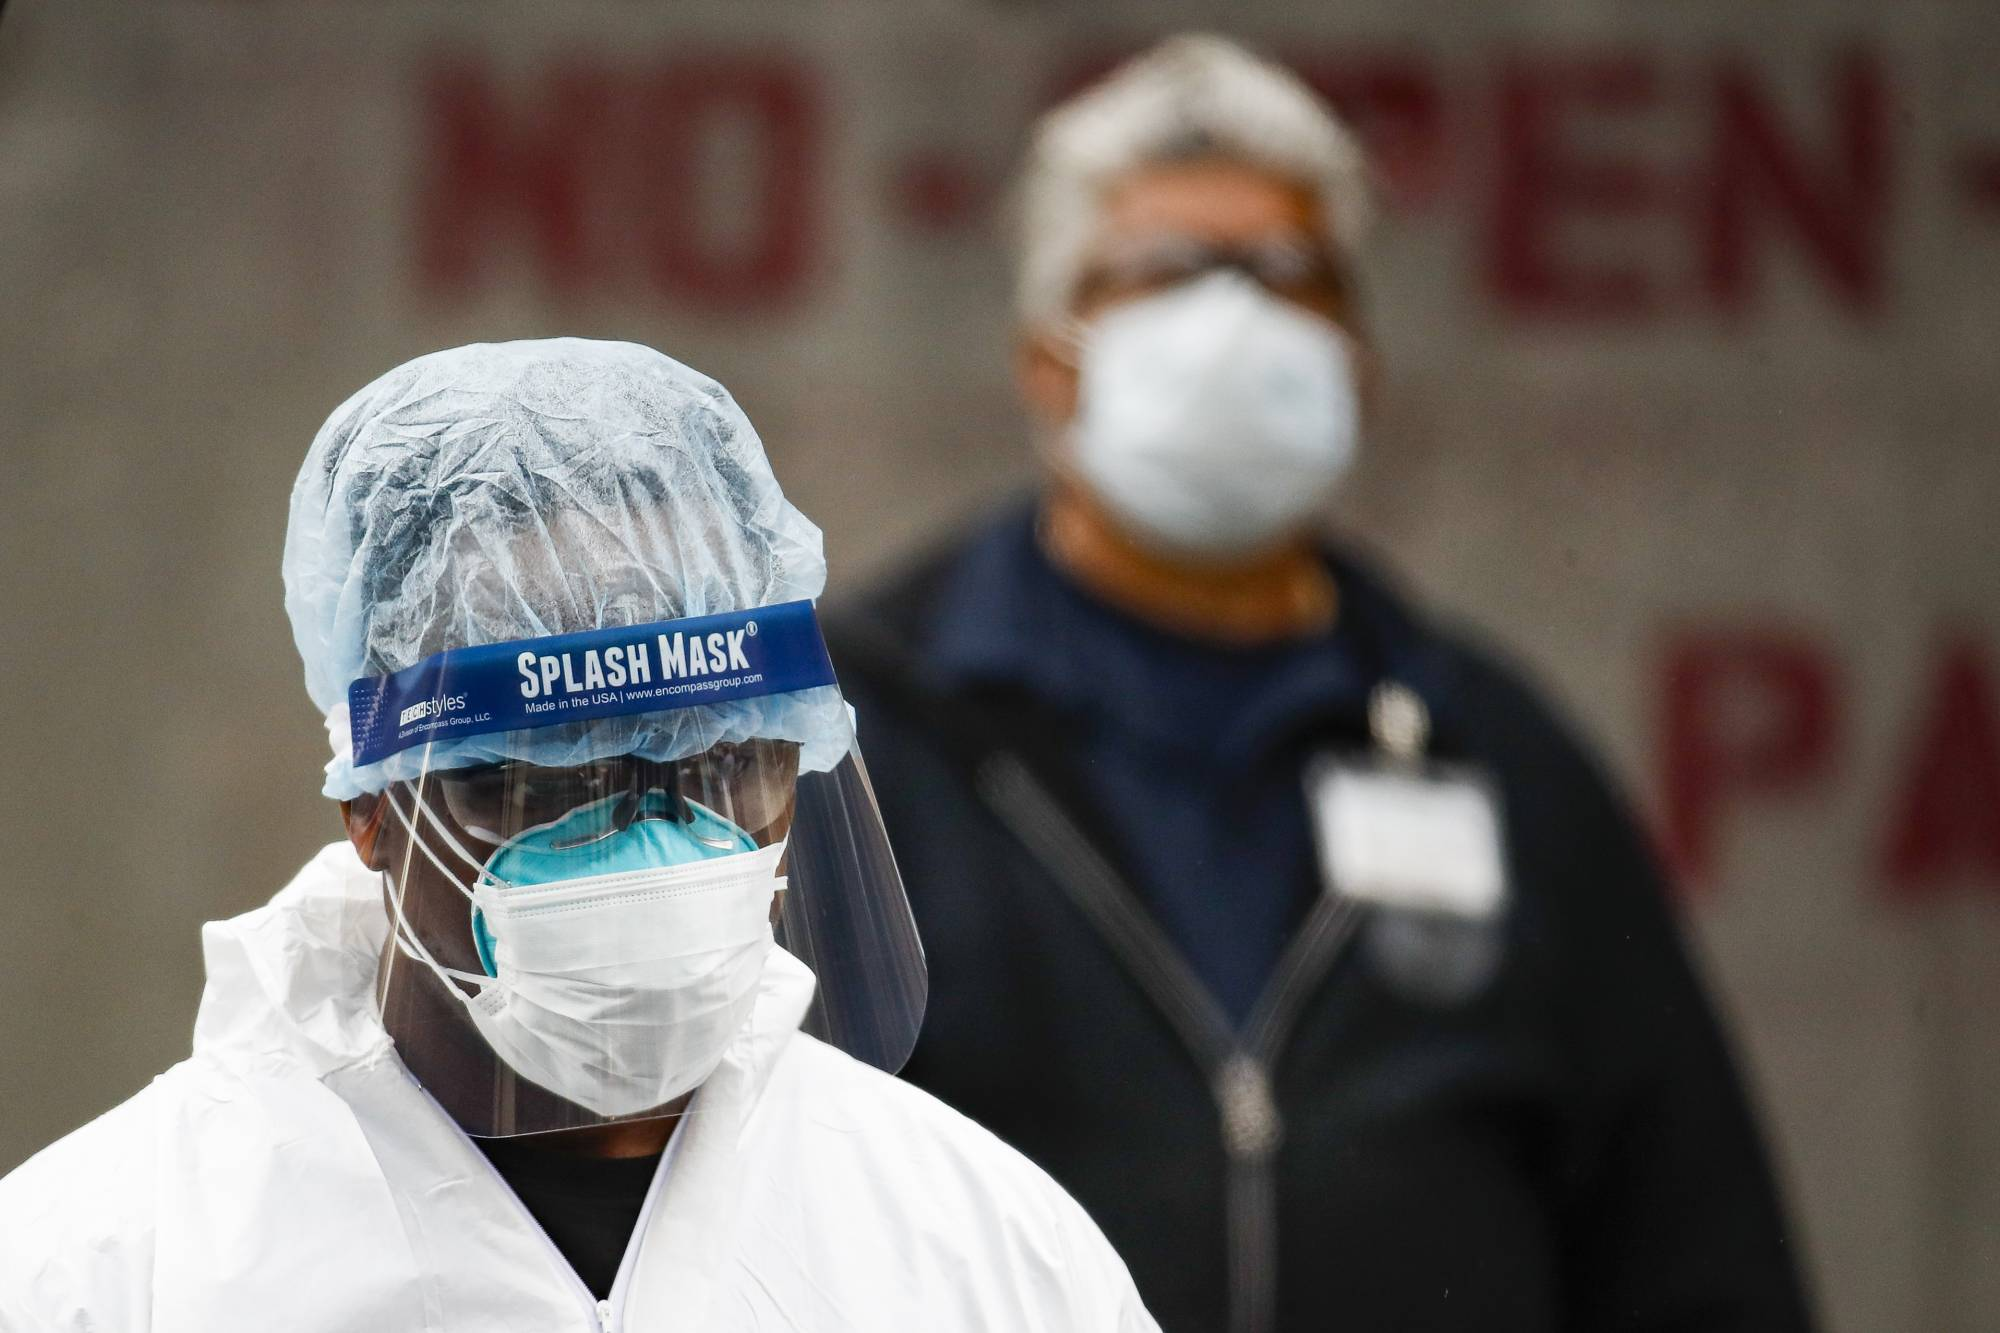 Medical workers wearing personal protective equipment due to COVID-19 concerns pause for rest before loading bodies into a refrigerated container truck functioning as a makeshift morgue, Tuesday, March 31, 2020, at Brooklyn Hospital Center in Brooklyn borough of New York. The new coronavirus causes mild or moderate symptoms for most people, but for some, especially older adults and people with existing health problems, it can cause more severe illness or death. (AP Photo/John Minchillo)